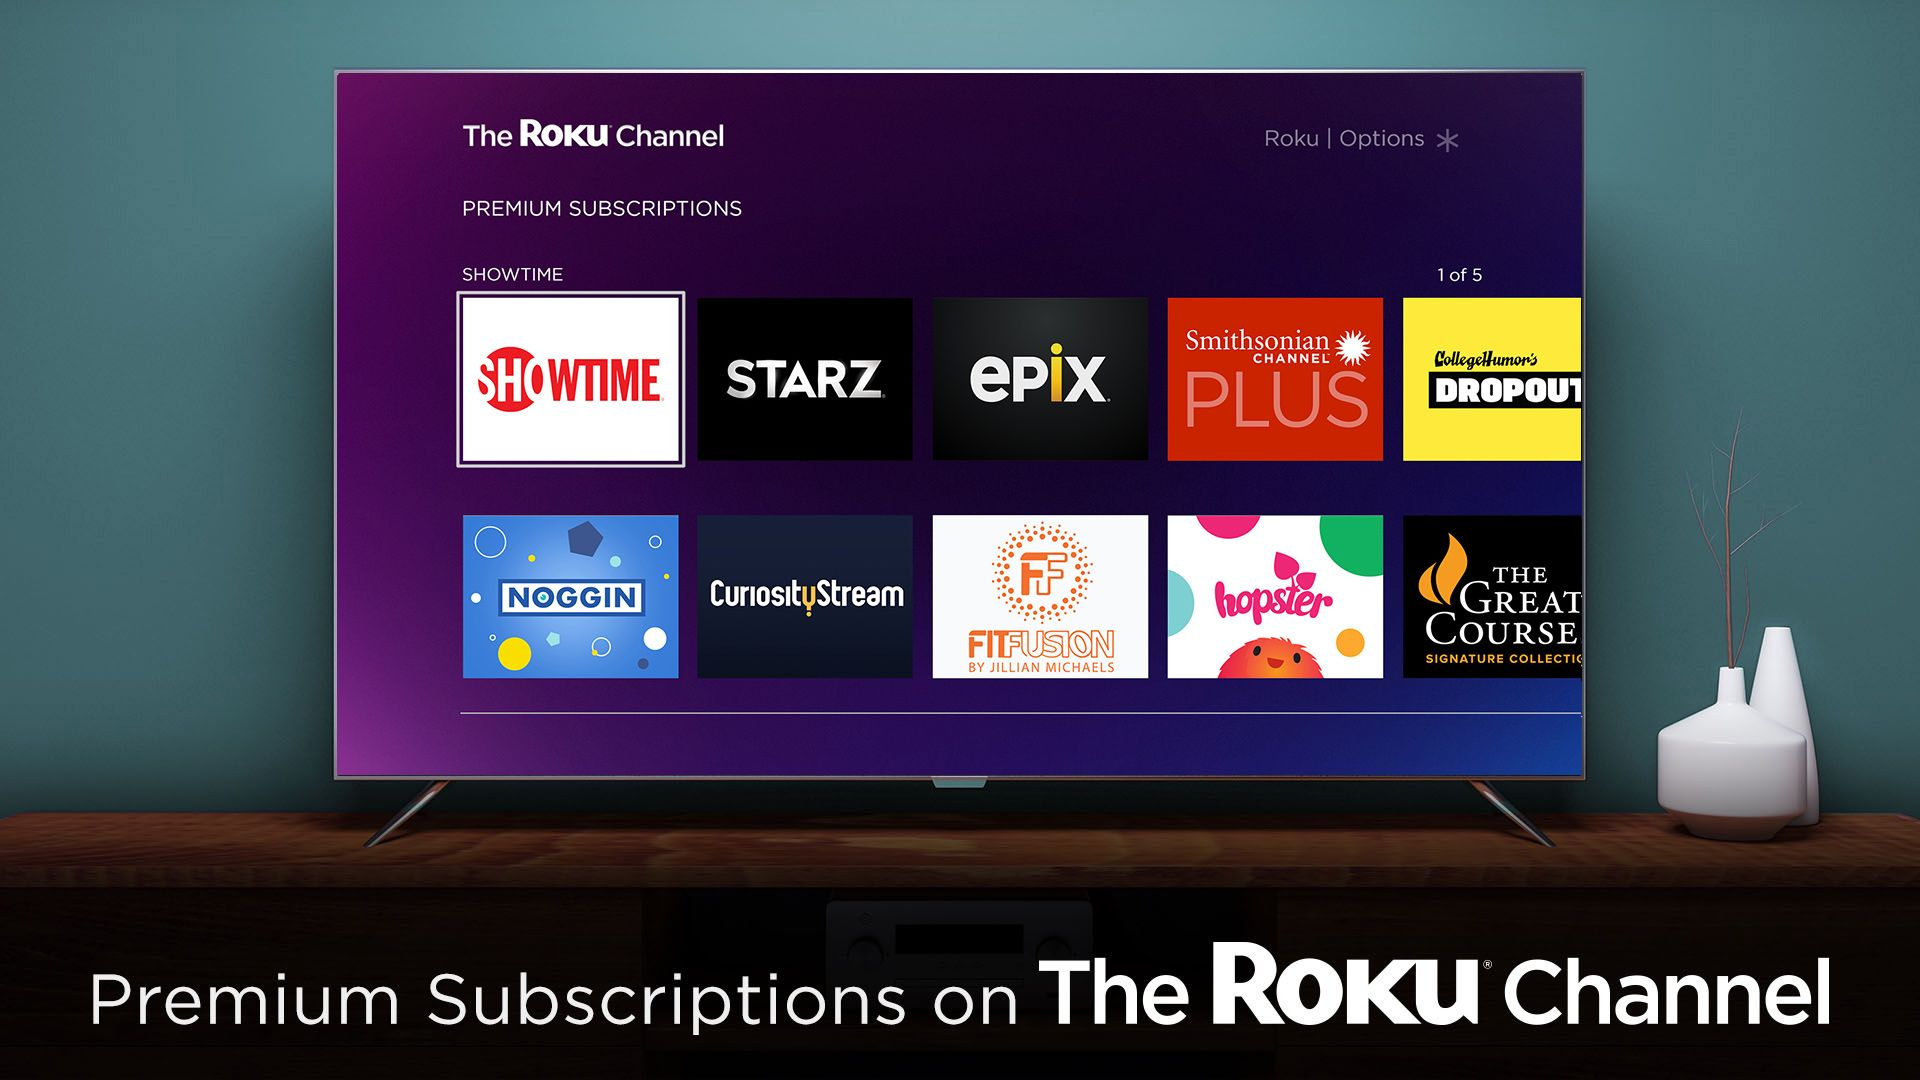 Roku's free streaming service is now available on iOS